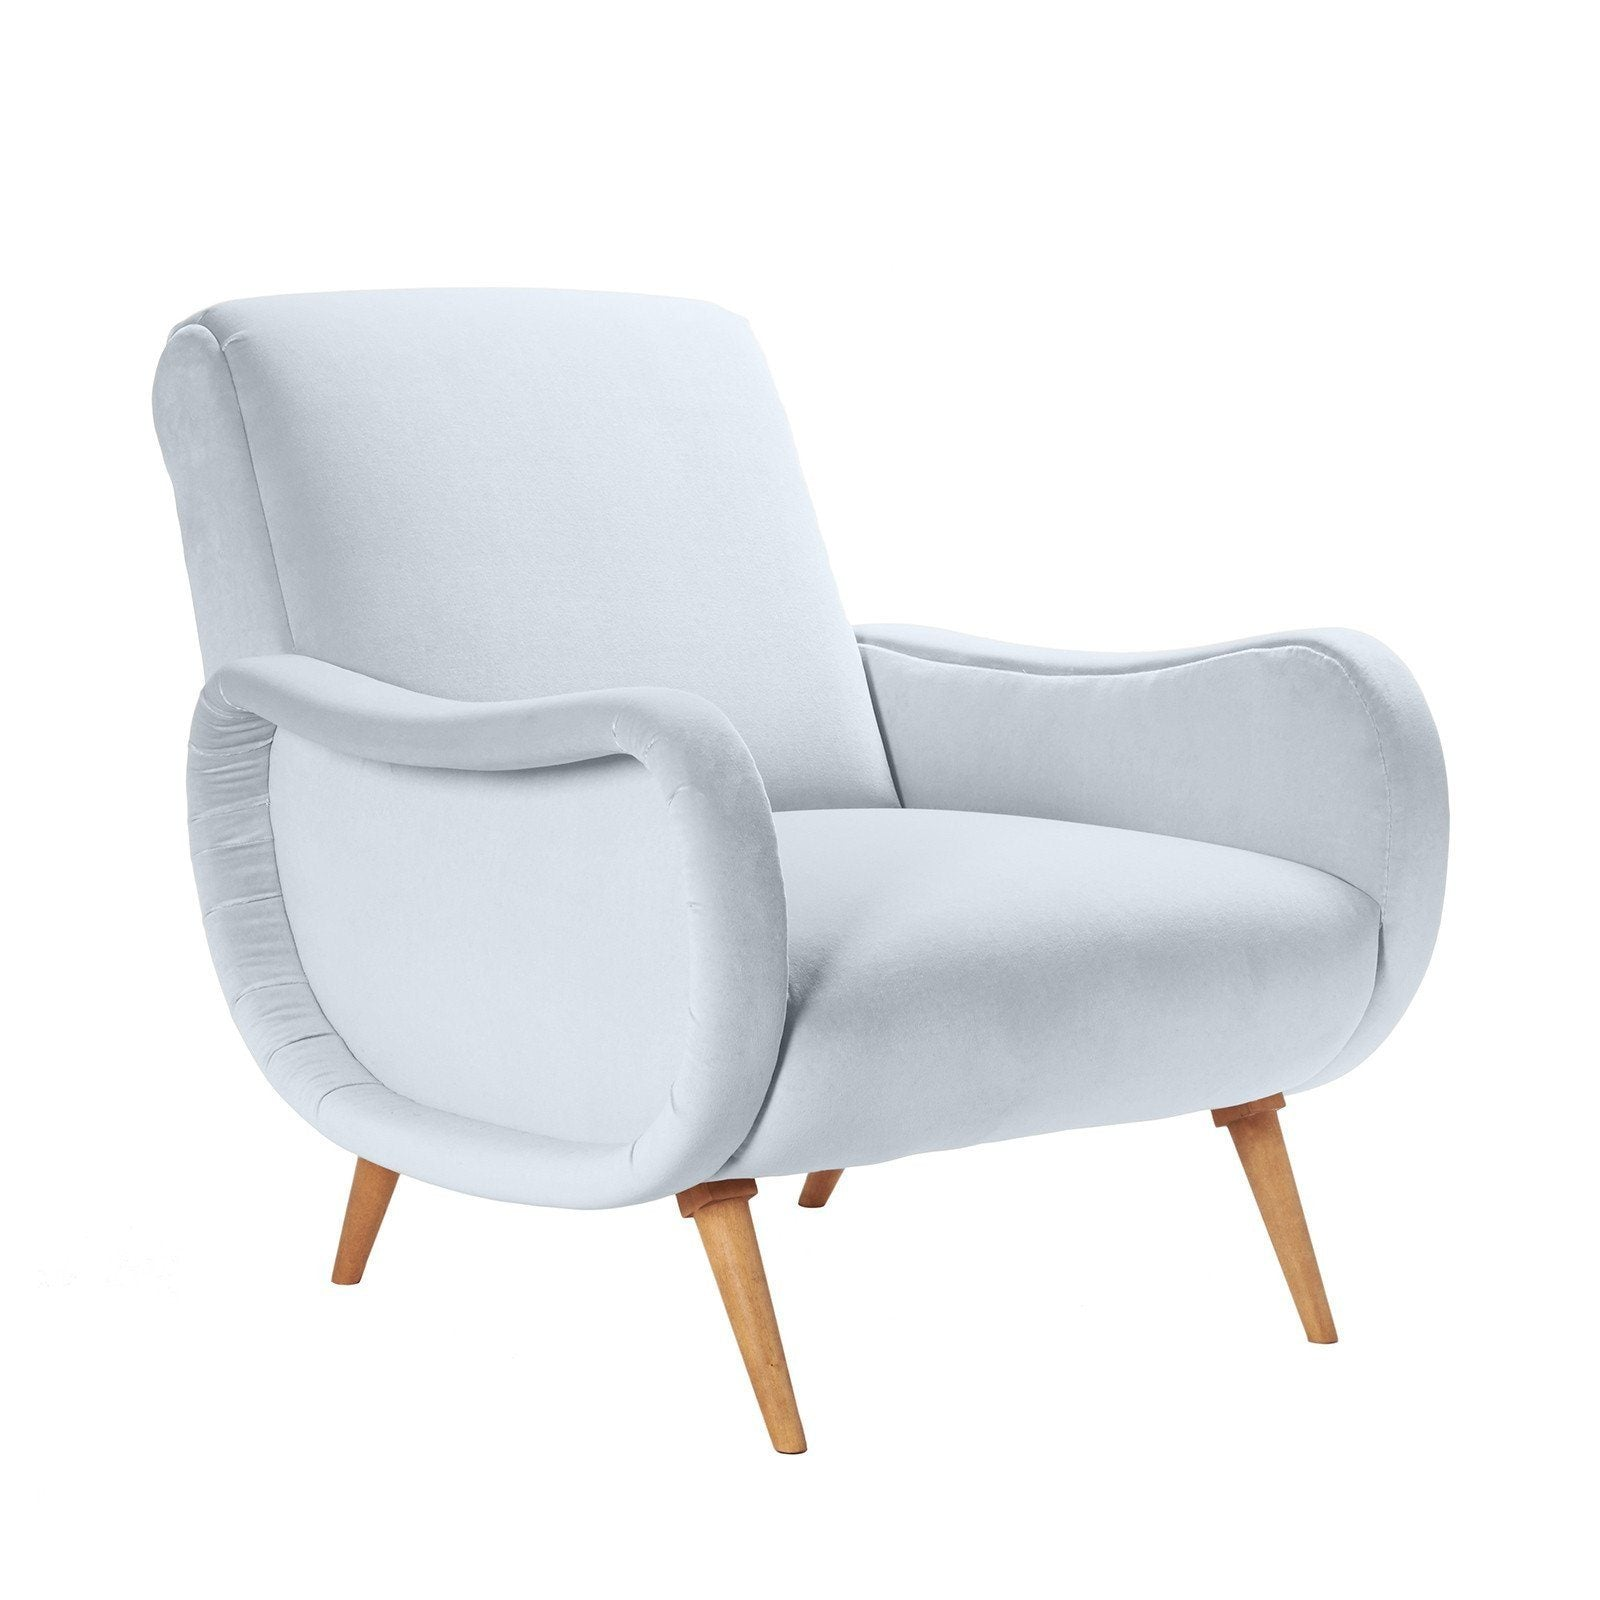 Susie Italian Modern Chair by Consort